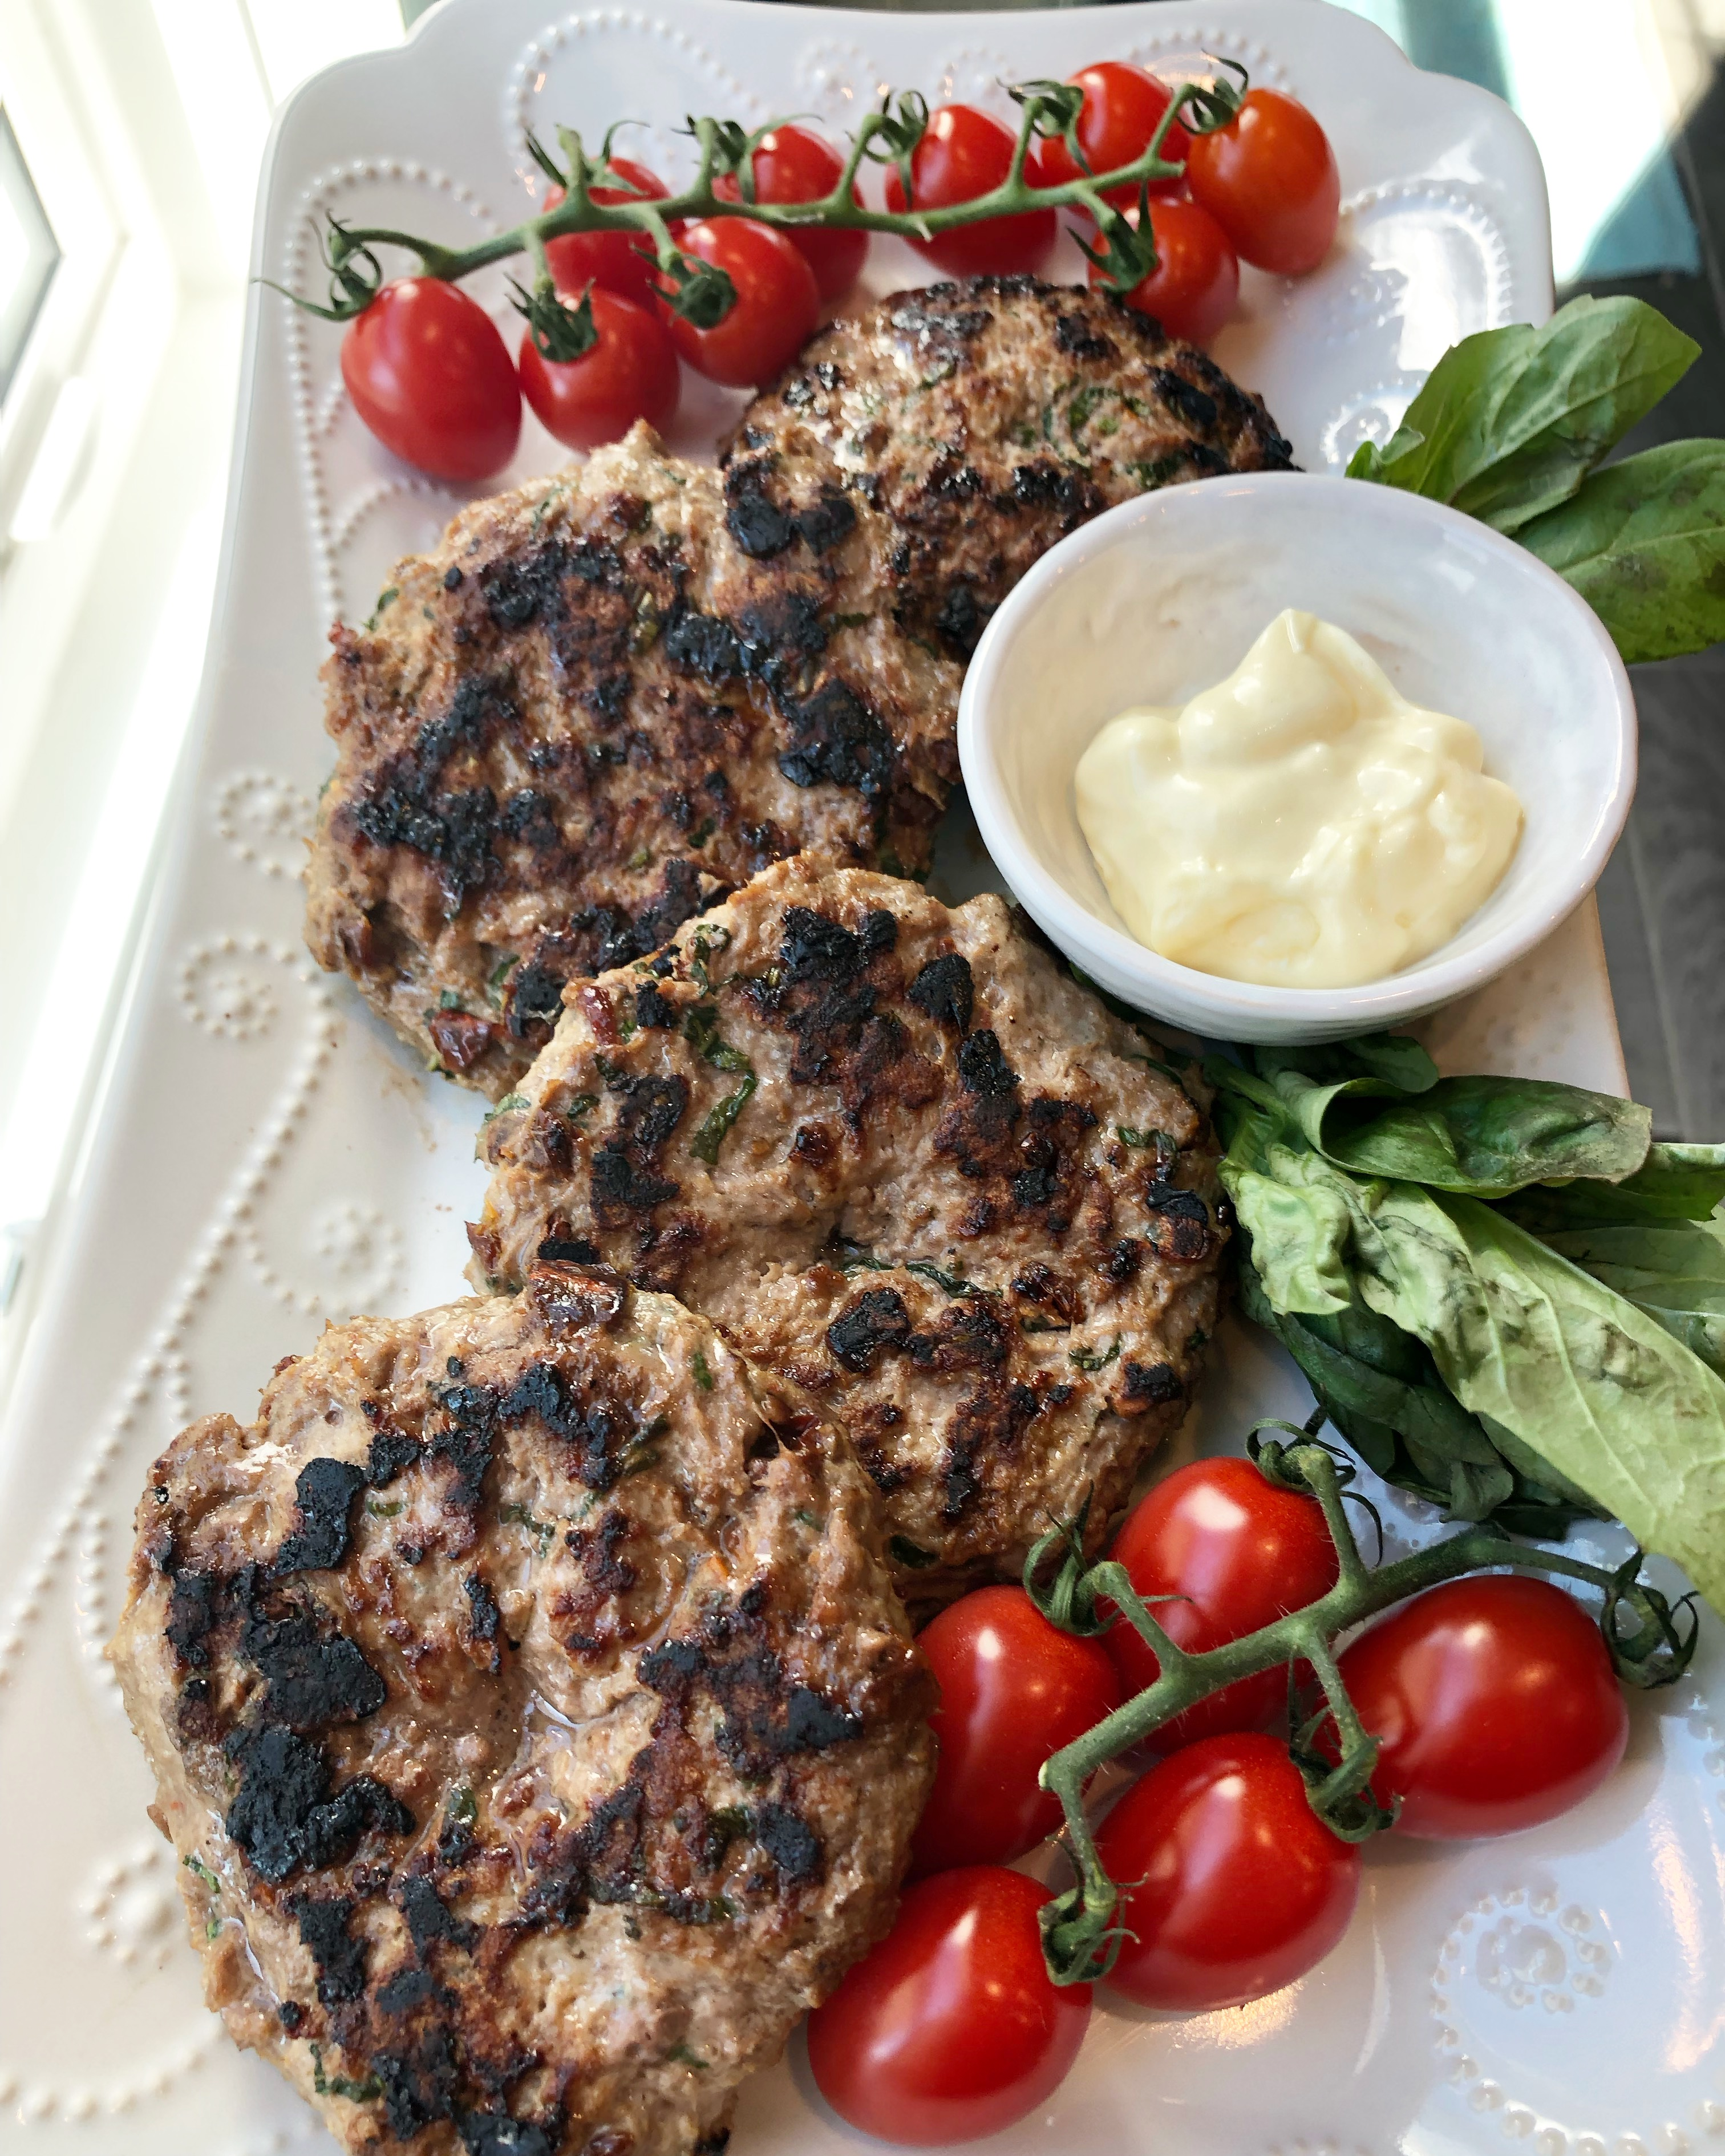 Lamb Burgers with Sun-Dried Tomatoes and Basil